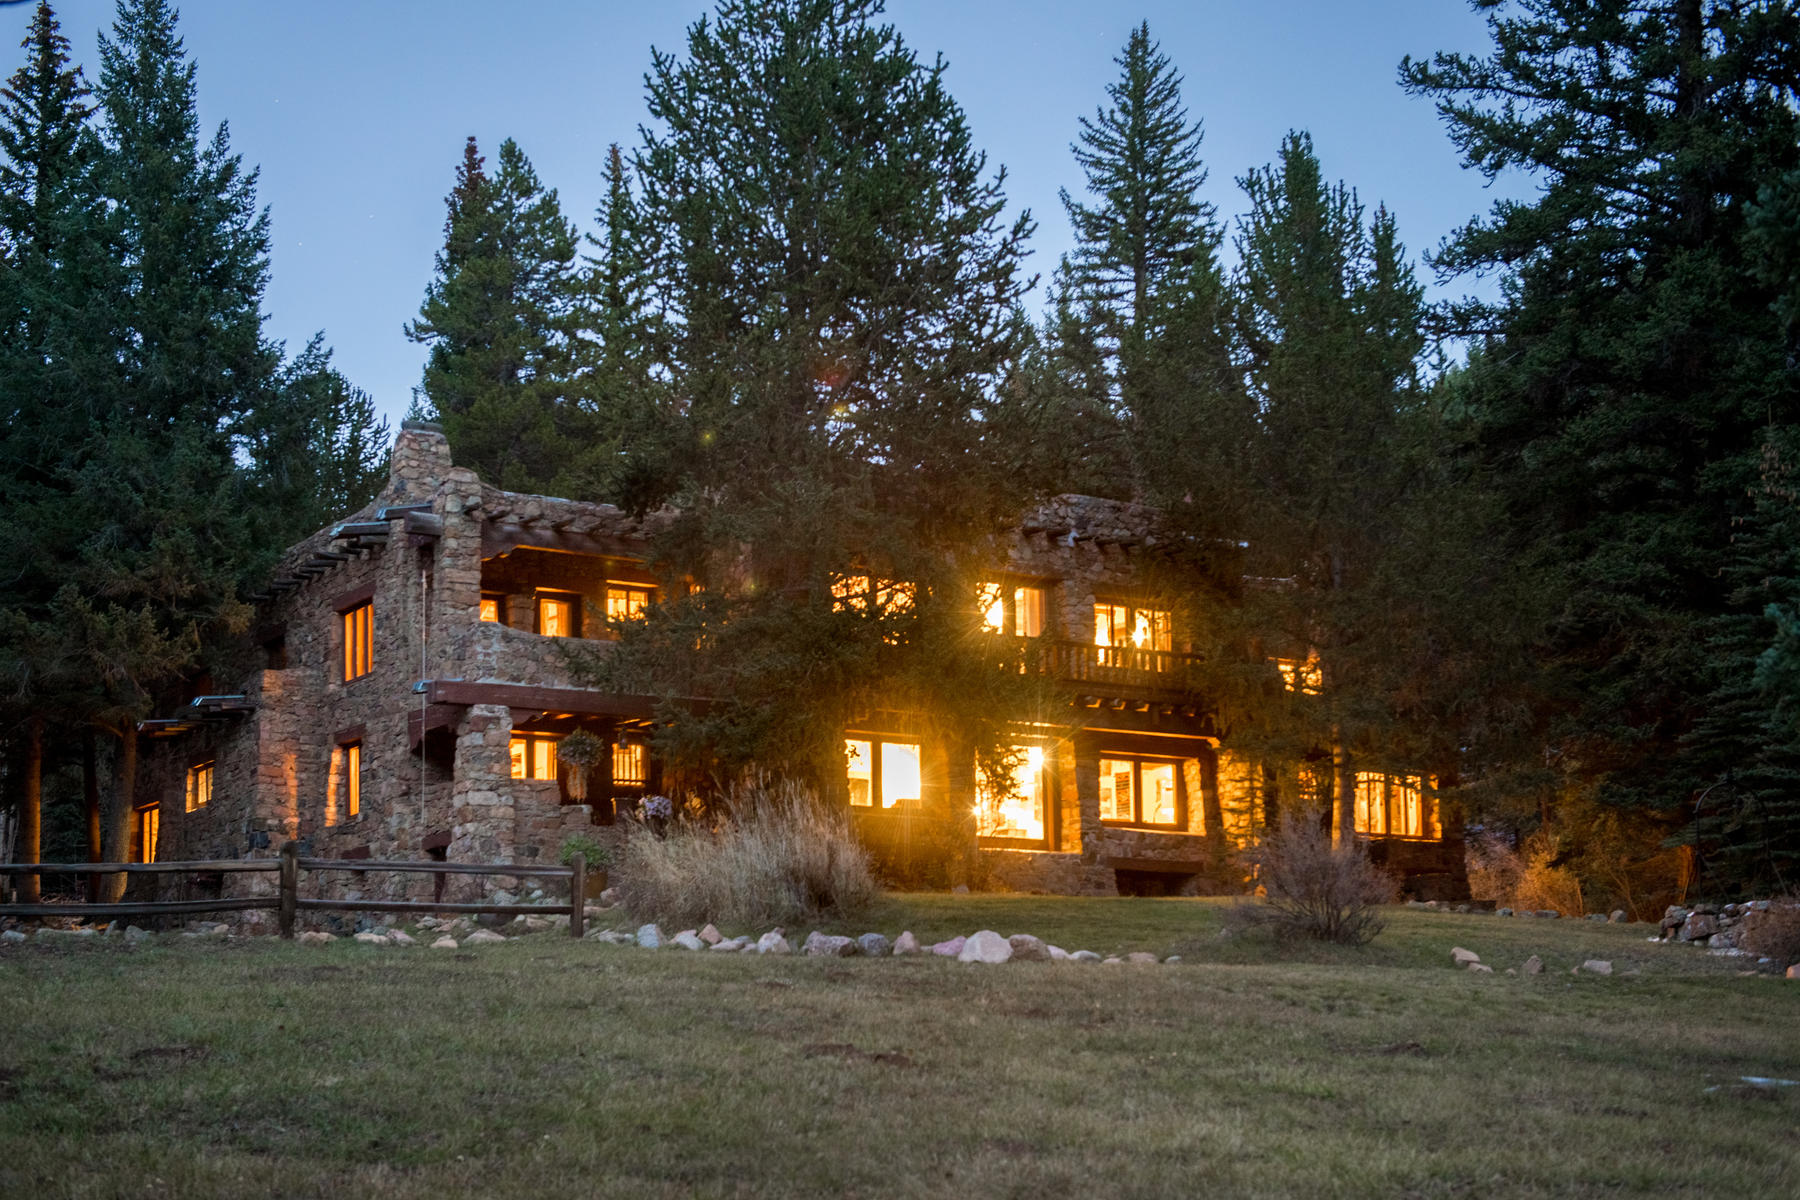 Single Family Homes for Sale at Adolph Coors' 1920's Homestead 3250 County Road 62, Grant, Colorado 80448 United States